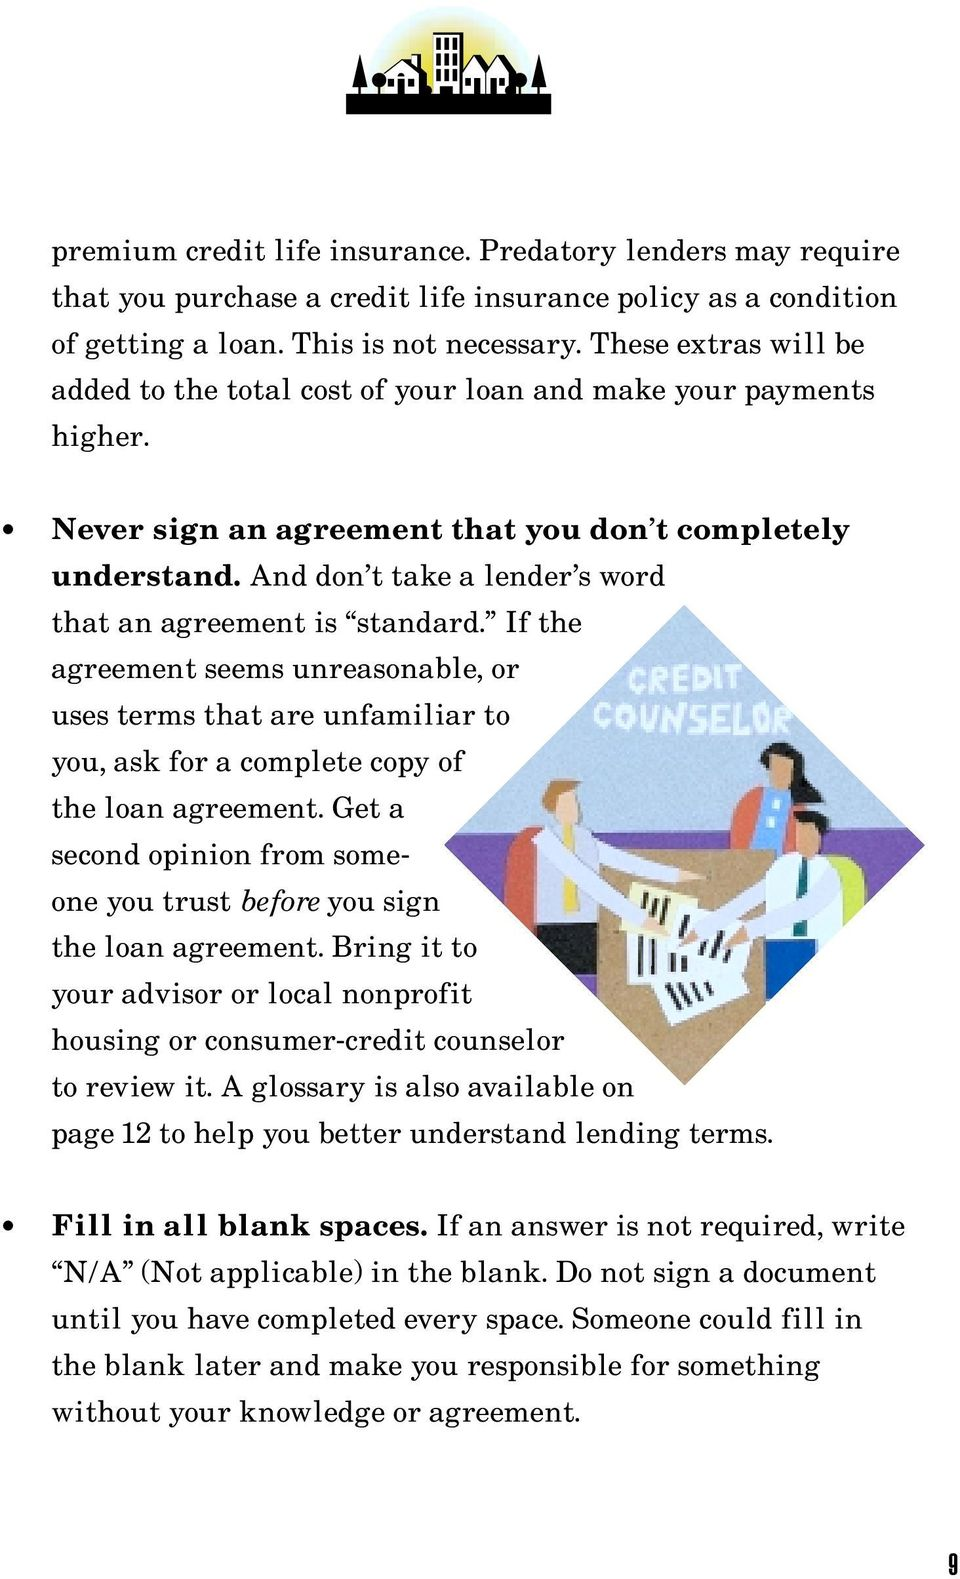 And don t take a lender s word that an agreement is standard. If the agreement seems unreasonable, or uses terms that are unfamiliar to you, ask for a complete copy of the loan agreement.